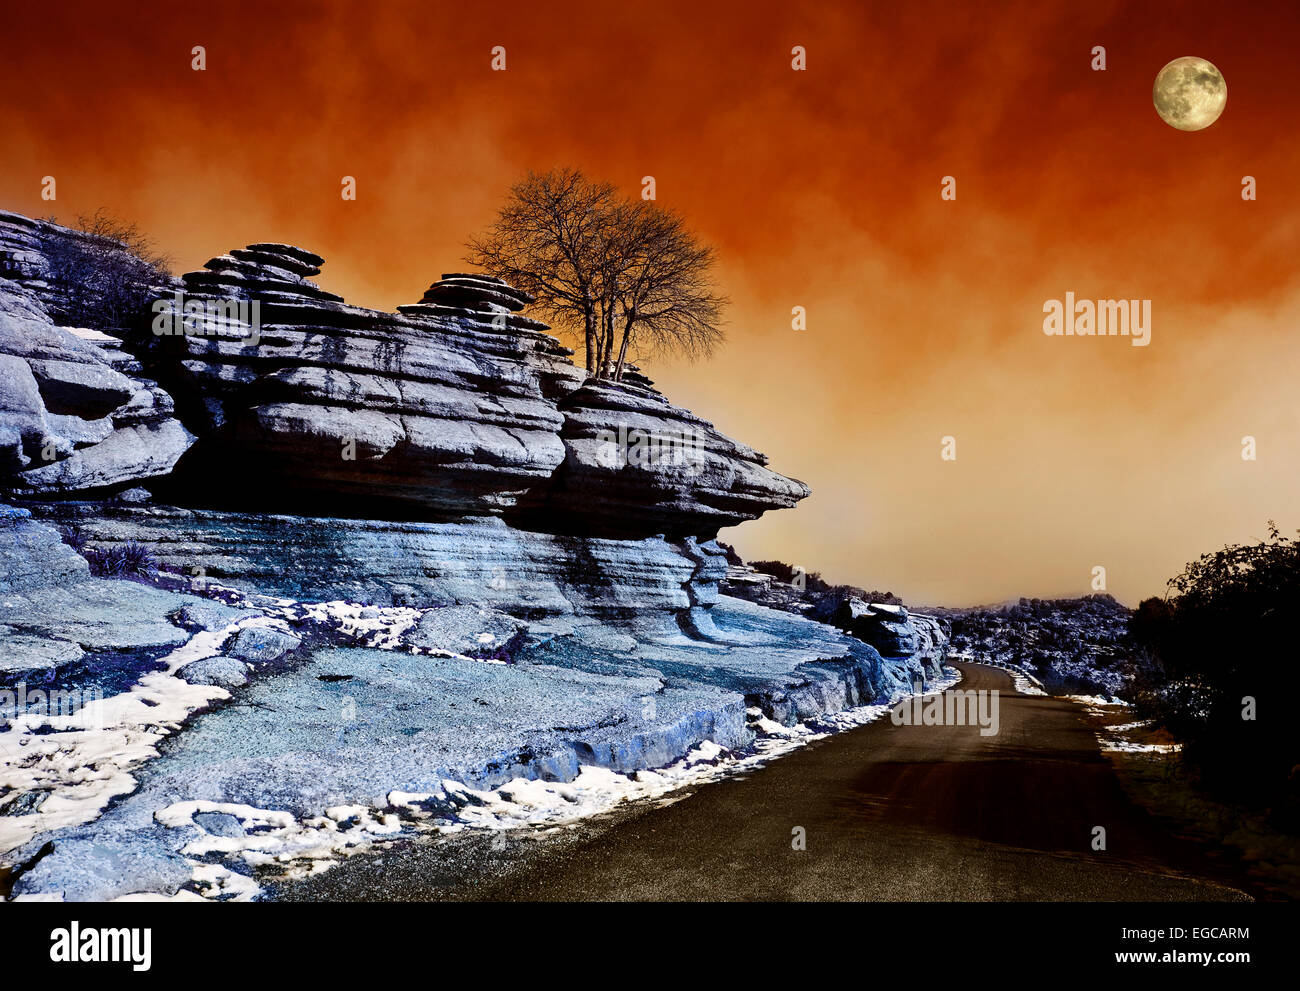 Infrared Image of the Moon rising over road through  El Torcal,  Antequera, Malaga Province,  Andalucia, Spain - Stock Image